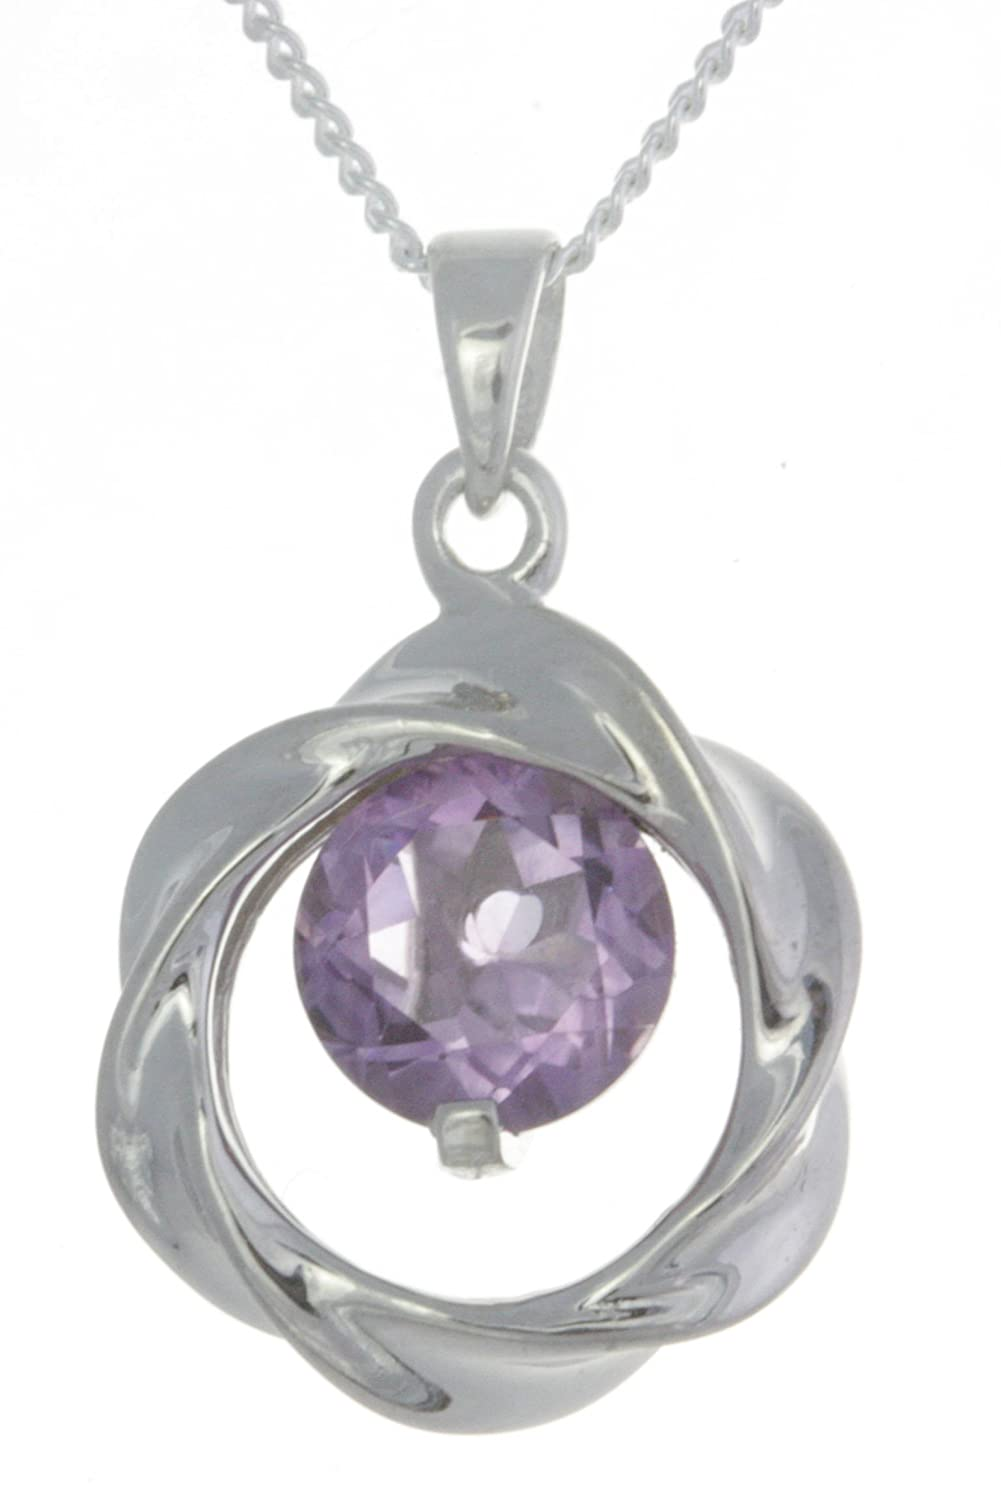 20mm13mm Chain with Amethyst Attractive 925 Sterling Silver Women Pendant